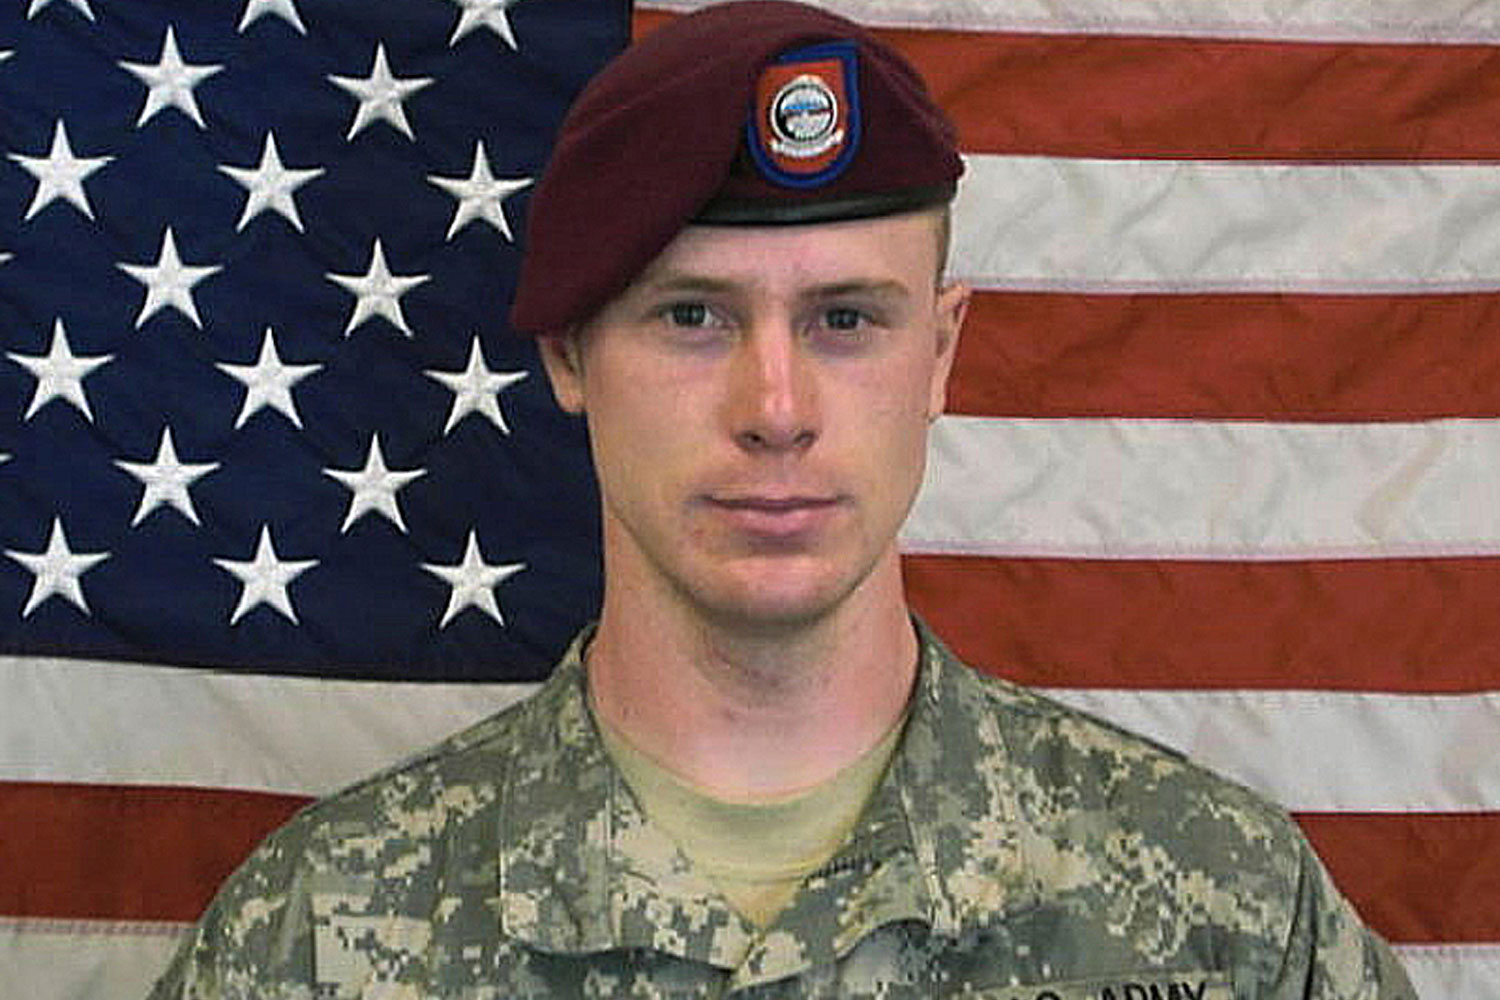 Sgt. Bowe Bergdahl in an undated image provided by the U.S. Army.